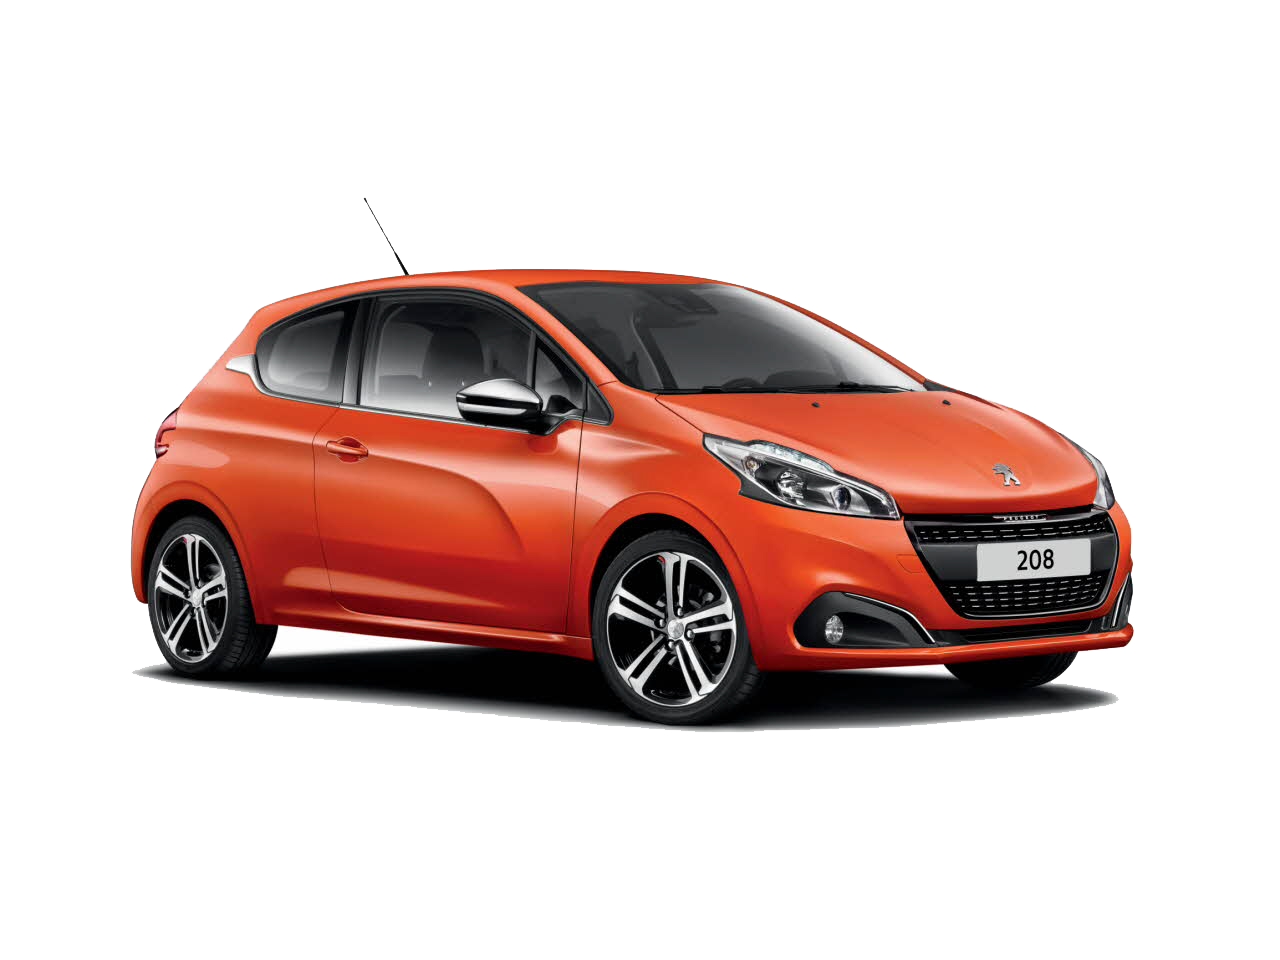 Clipart car on road image freeuse stock Peugeot car PNG images free download image freeuse stock